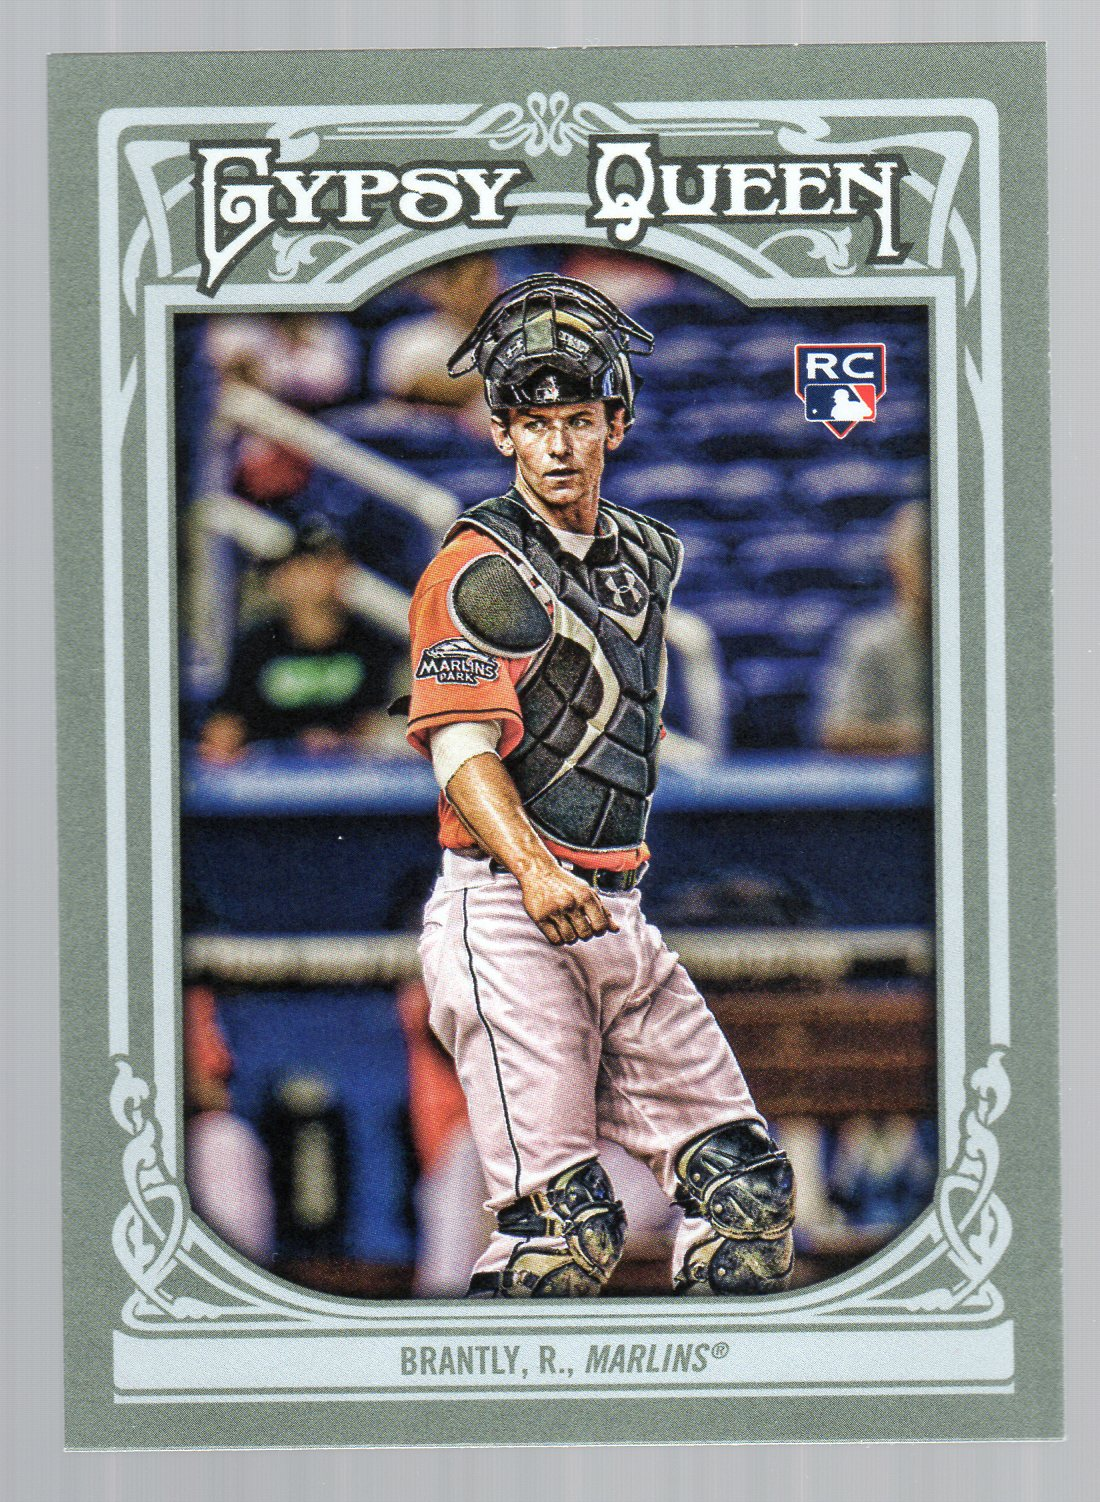 2013 Topps Gypsy Queen #33 Rob Brantly RC